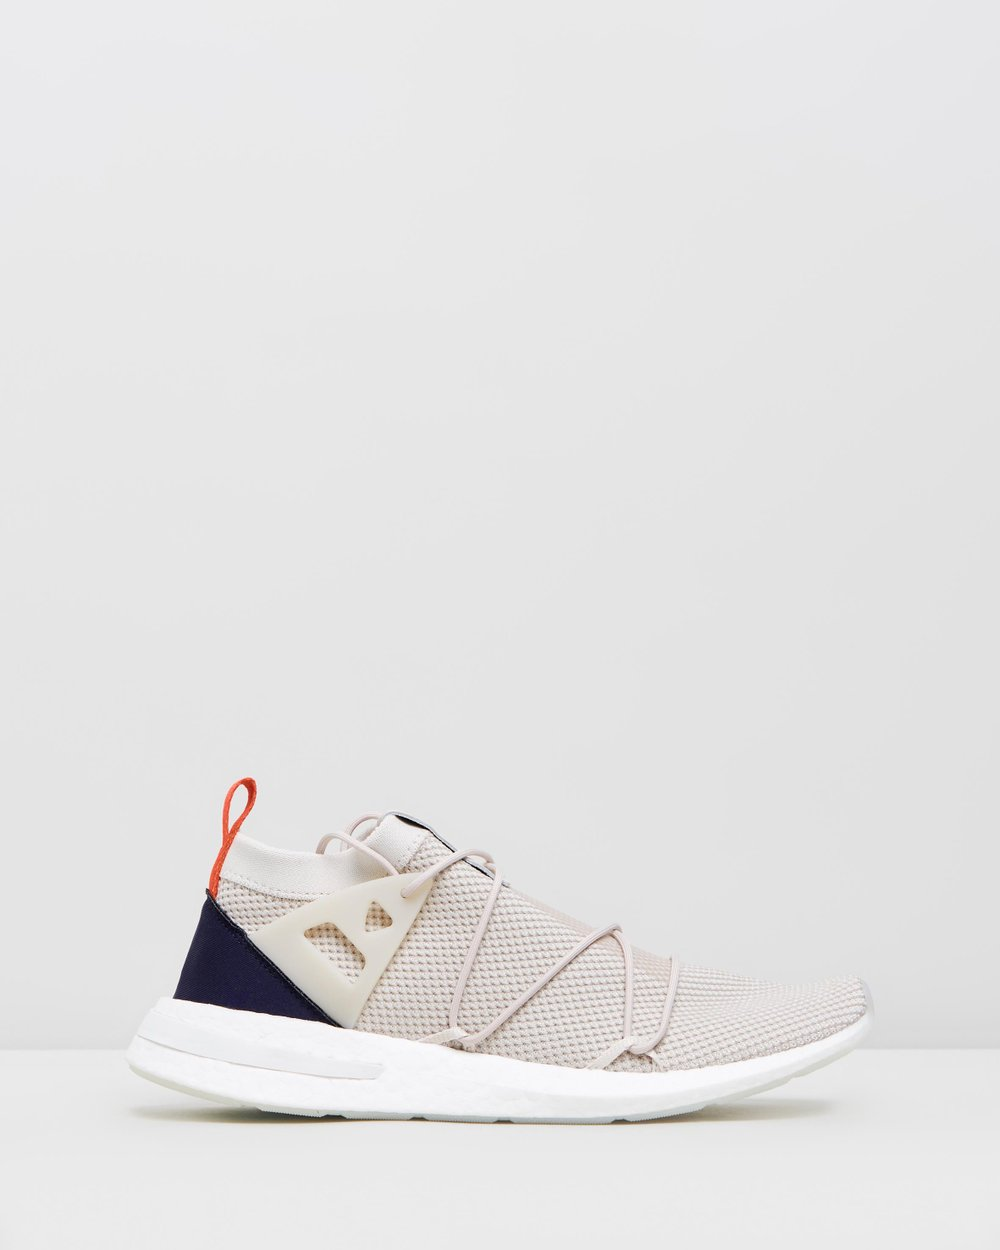 premium selection f8e37 58b52 Arkyn Knit Shoes - Women s by adidas Originals Online   THE ICONIC    Australia